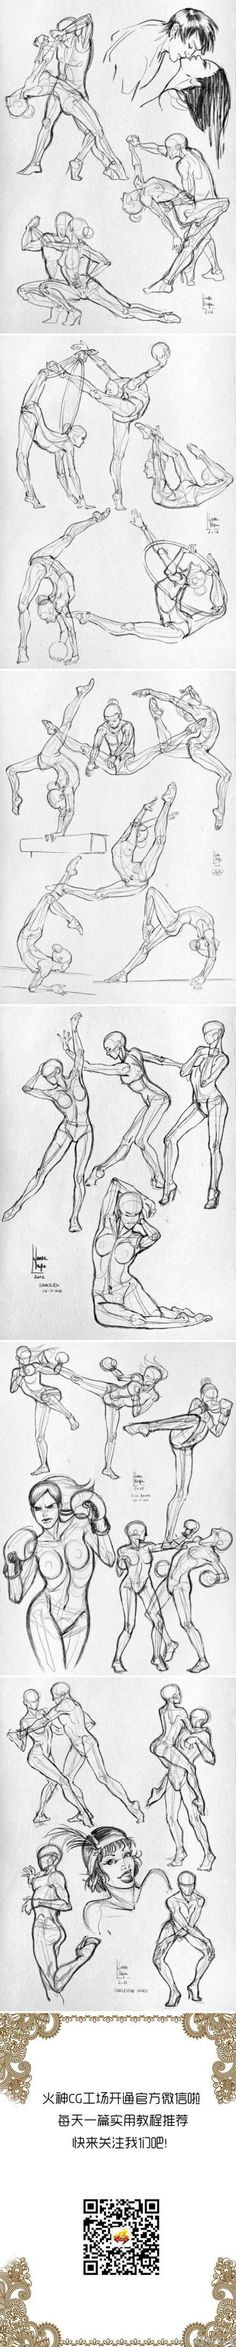 Fantastic Poses drawn well!! Would be really good for Cast comics!